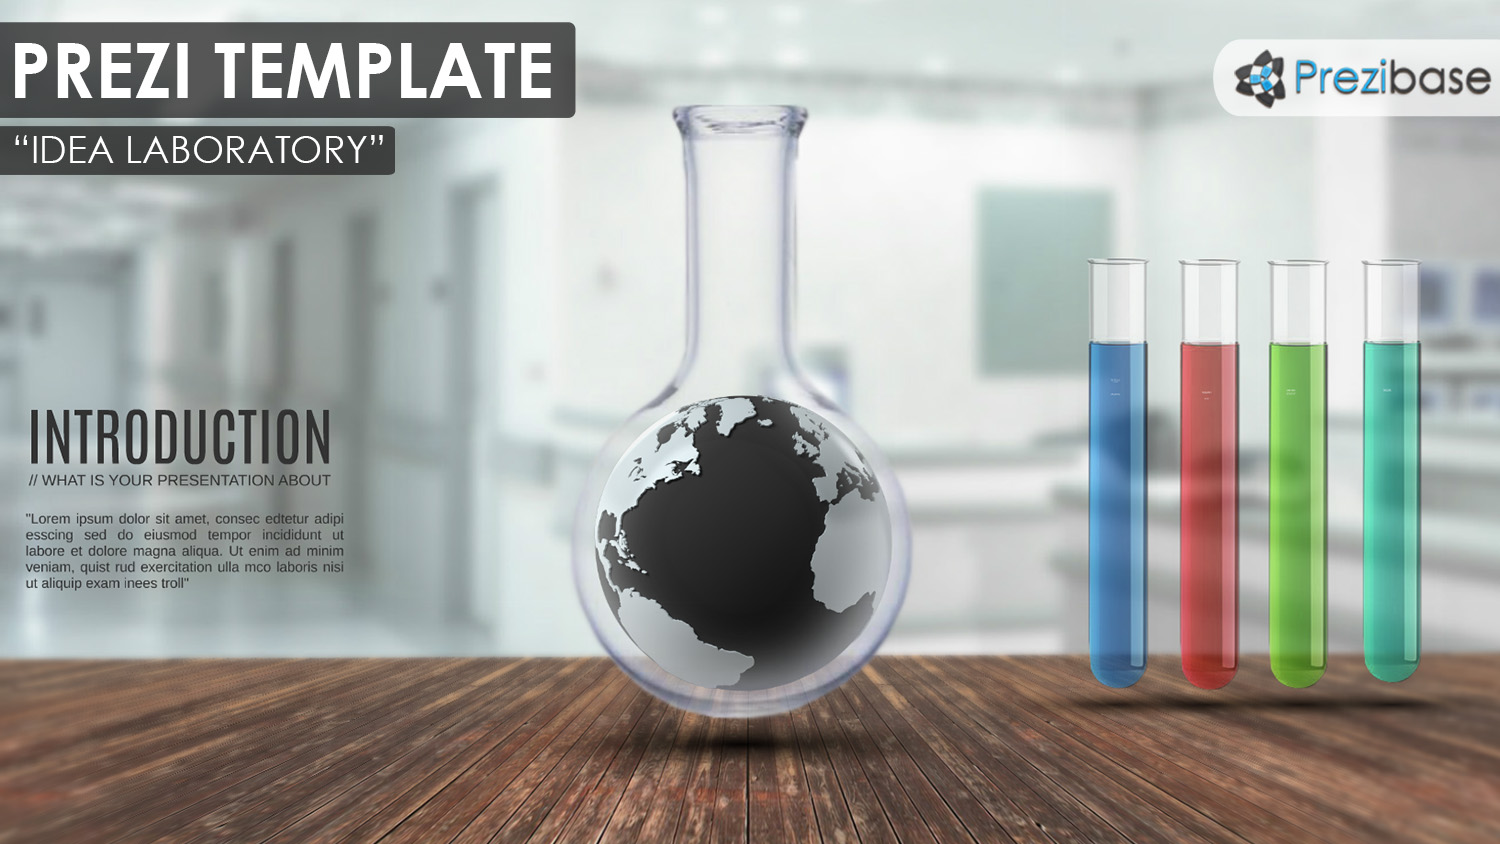 school chemistry science ideas 3d prezi template